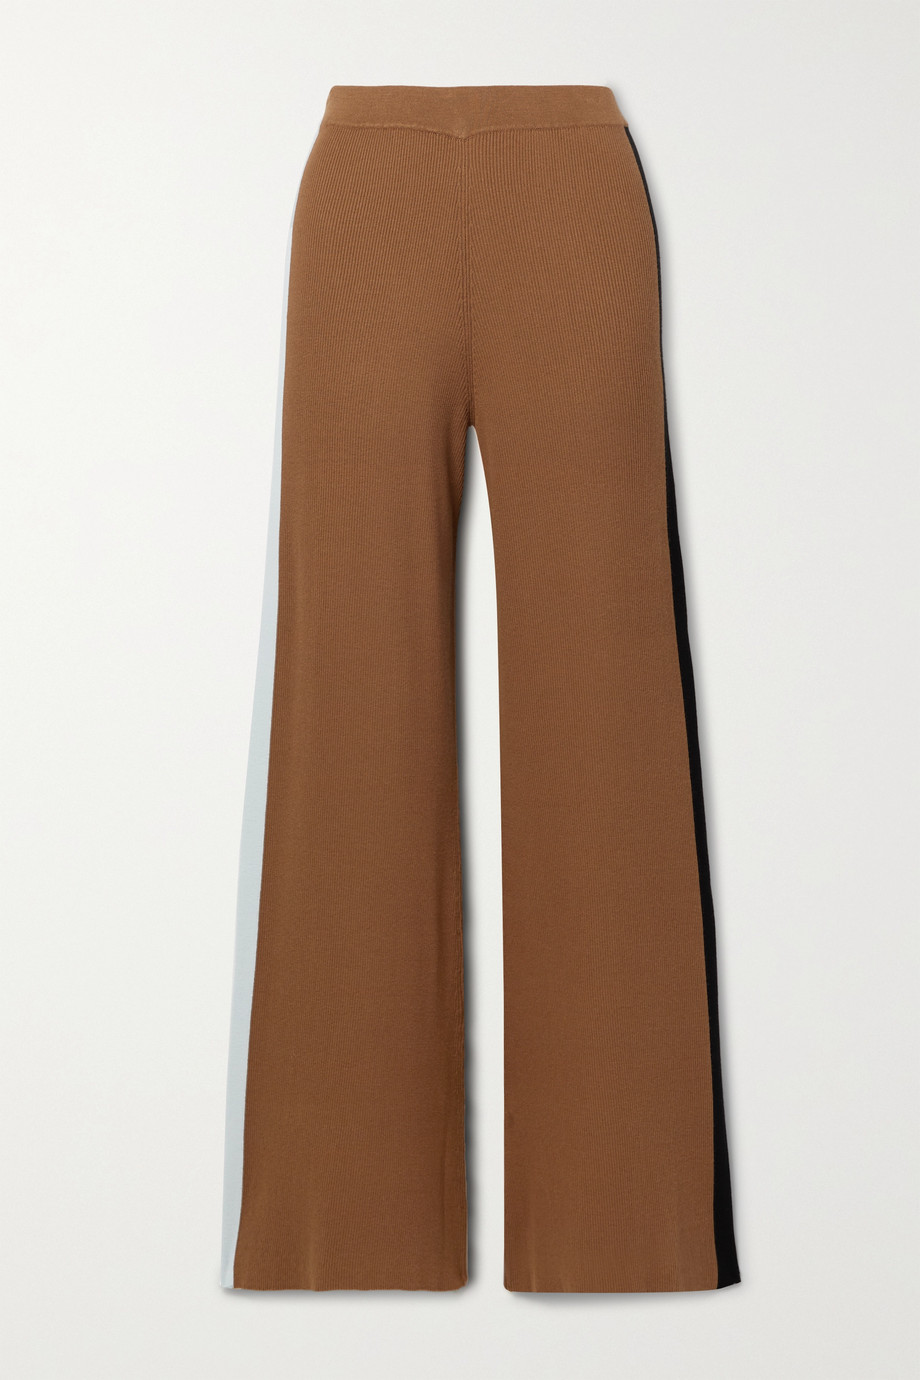 STAUD Ski color-block ribbed-knit wide-leg pants